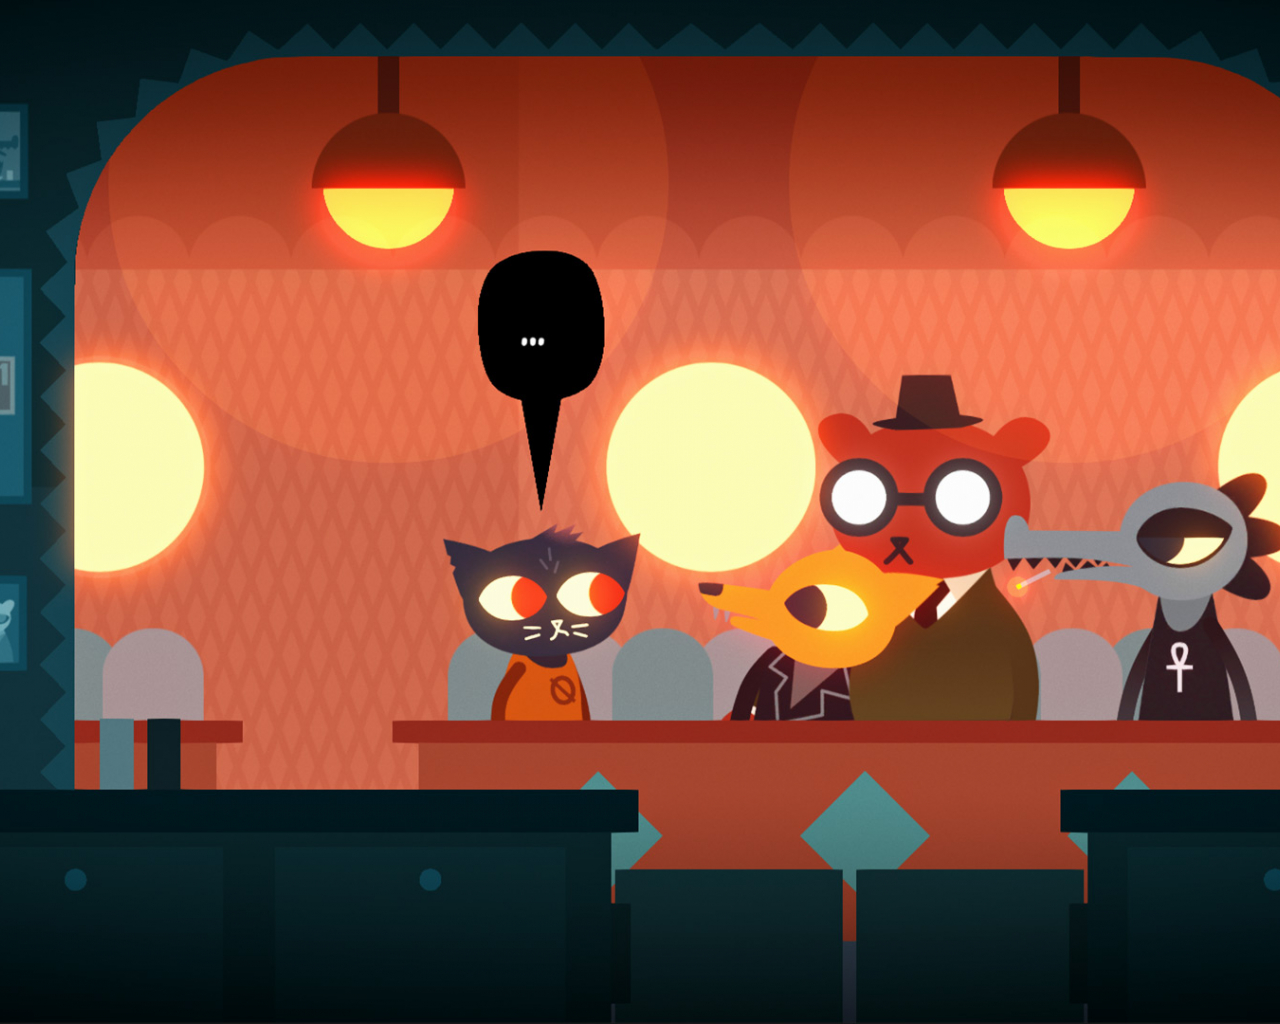 Free Download Night In The Woods Full Hd Wallpaper And Background